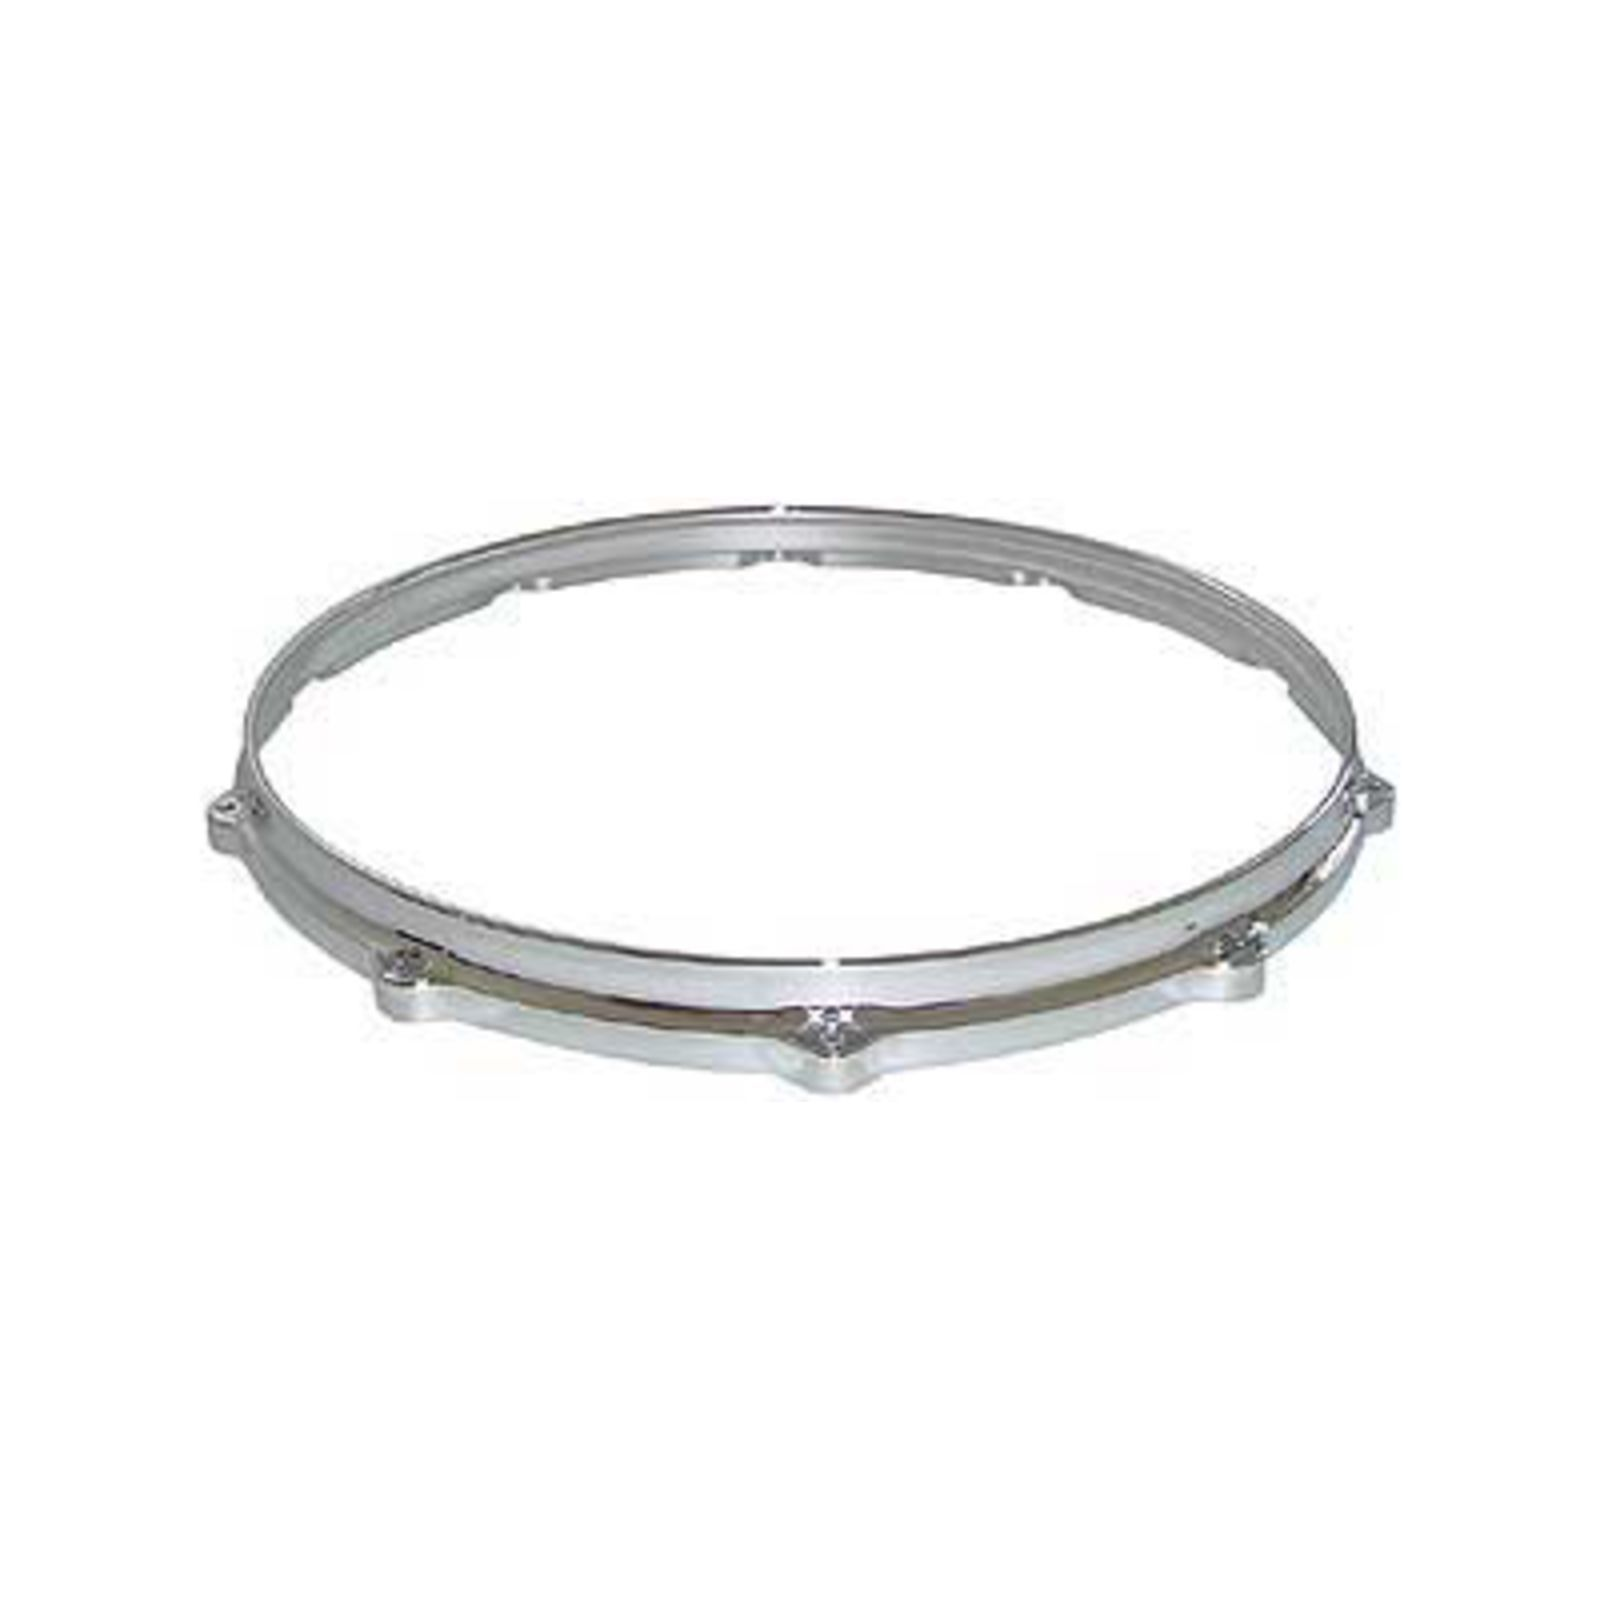 "Pearl Master Cast Hoop 10"" 6-Hole Product Image"